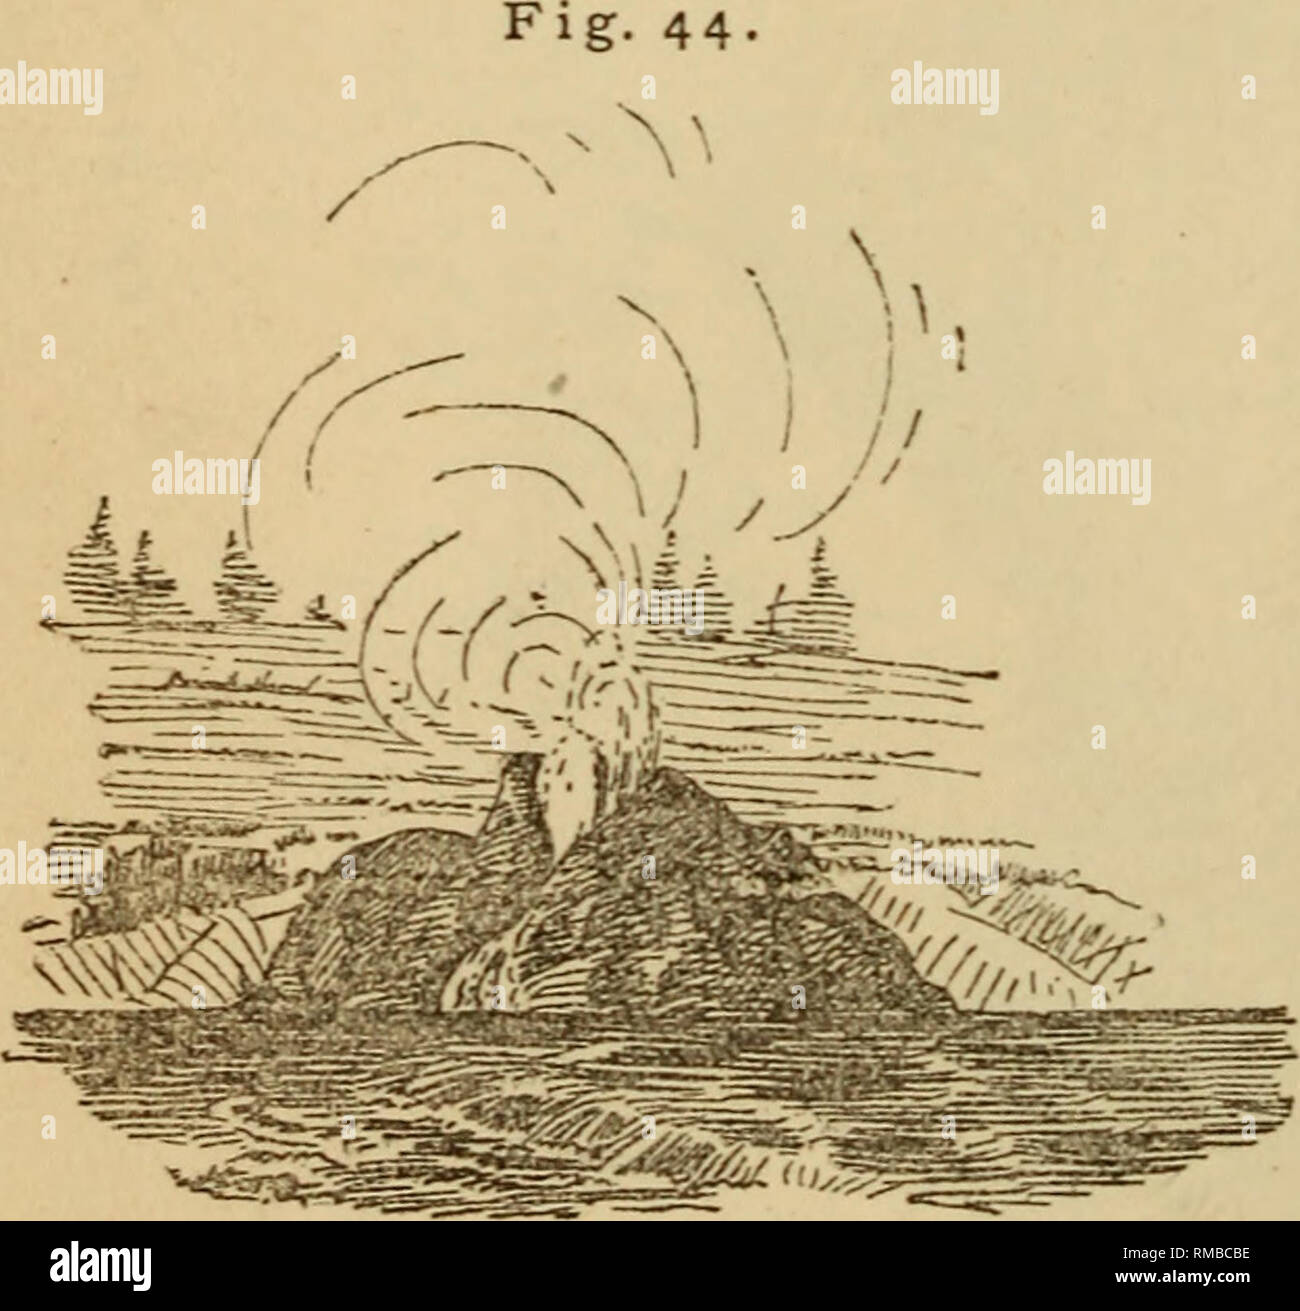 . Annual report. 1st-12th, 1867-1878. Geology. 112 GEOLOGICAL SUEYEY OF THE TERRITORIES. called the White Dome Geyser. (Fig. 42.) The broad mound is 15 feet high, and upon this is a chimney about 20 feet in height. The steam issues steadily from the toiy like a high-pressui^e engine. Early in the morning of August 30, the valley was literally filled with columns of steam, ascending from more than a-thousand vents. I can compare the view to nothing but that of some manufacturing city like Pittsburgh, as seen from a high point, except that instead of the black coal smoke, there are here the whit - Stock Image